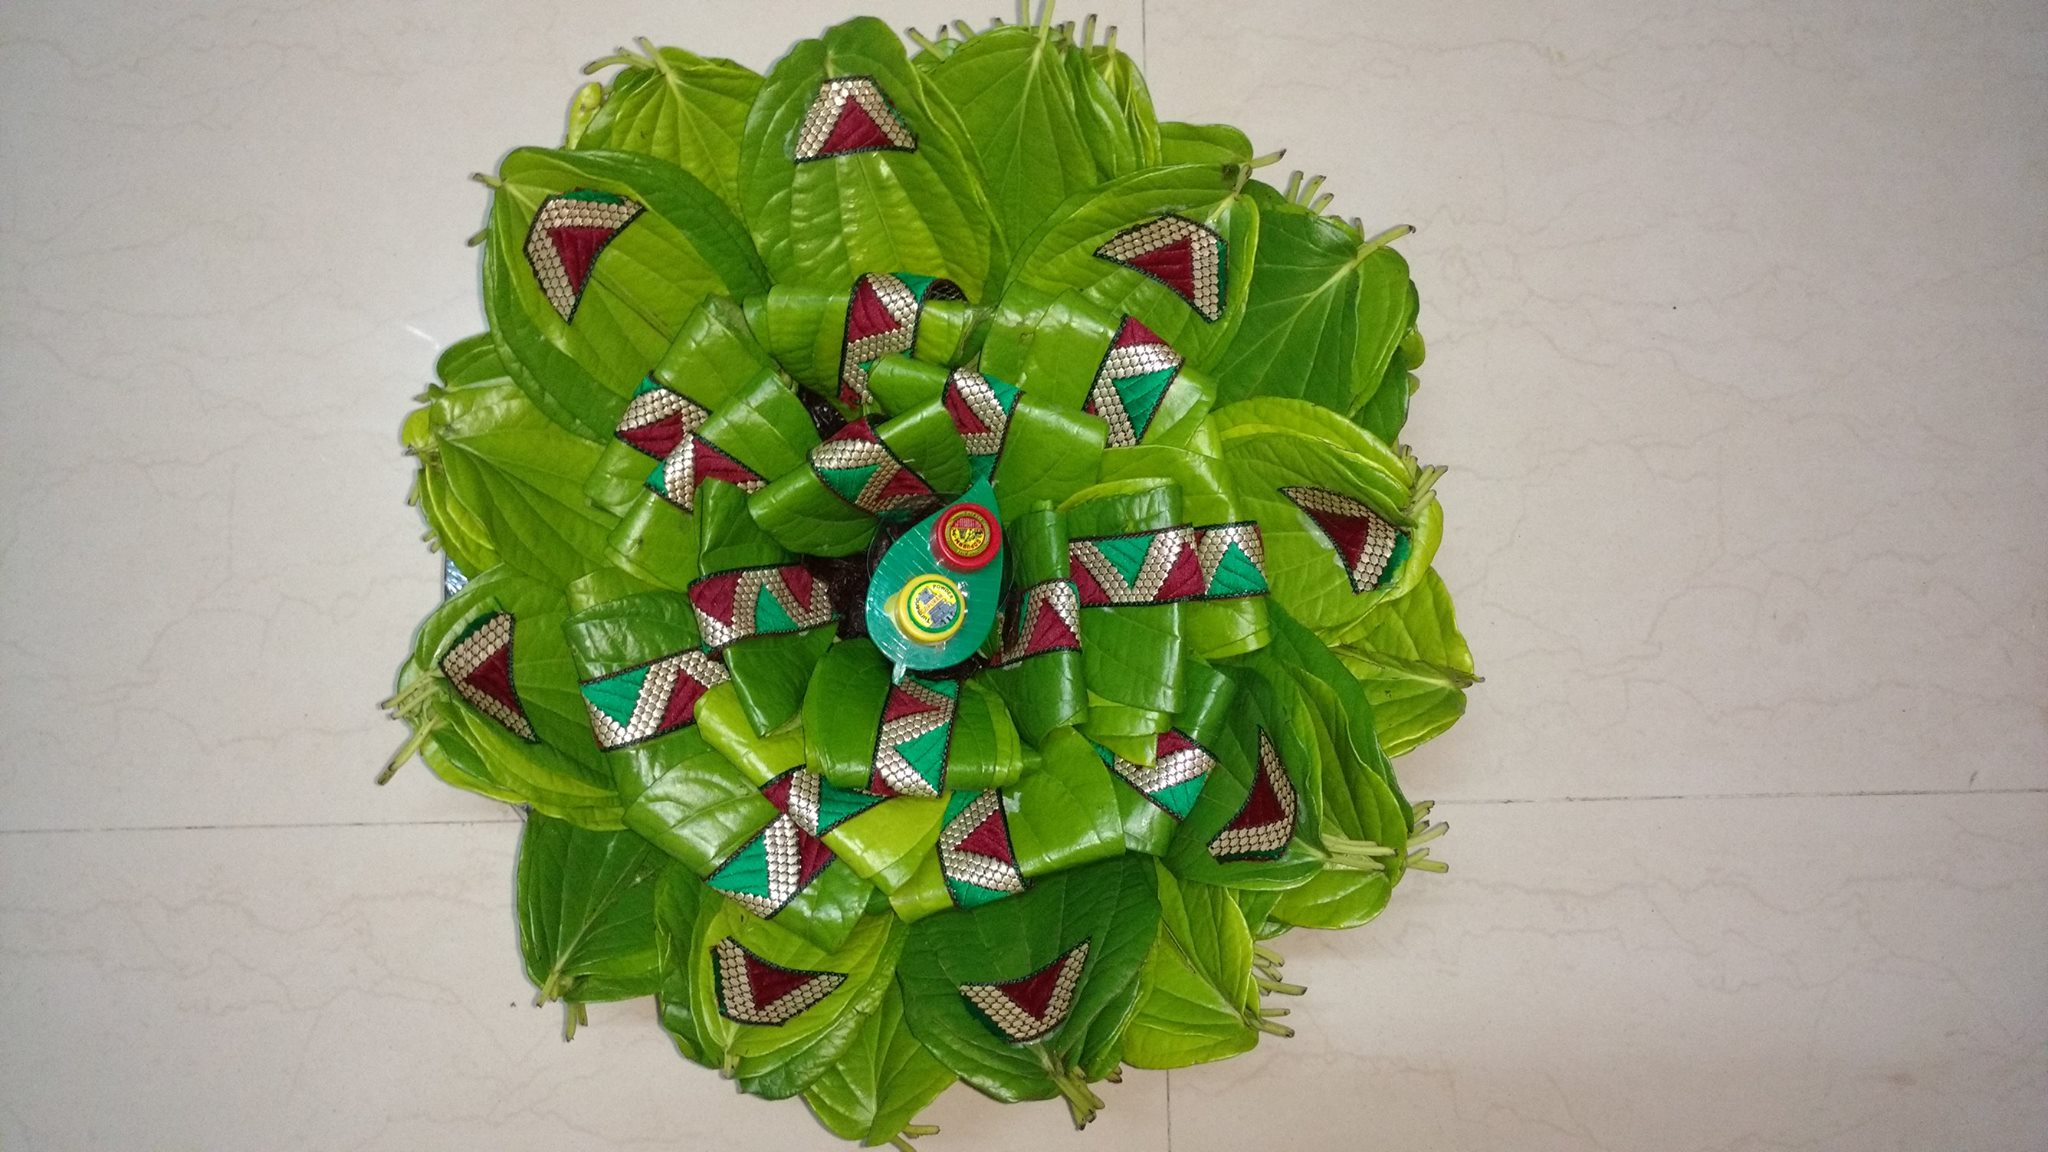 20.Betel Leaves with lace work decoration